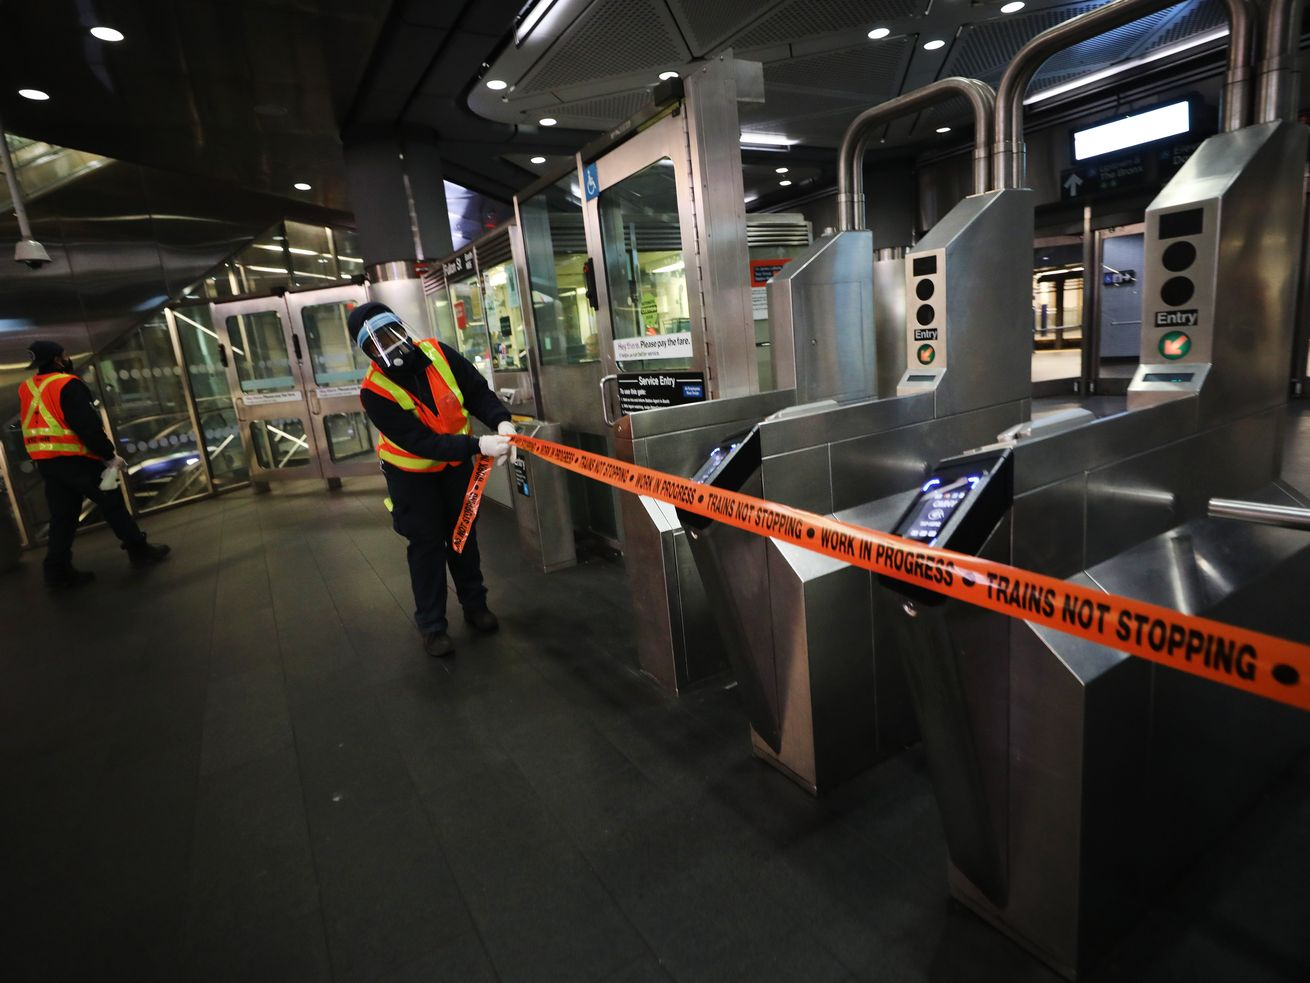 Workers close down a station as the New York City subway system, the largest public transportation system in the nation, is closed for nightly cleaning due to the continued spread of the coronavirus.